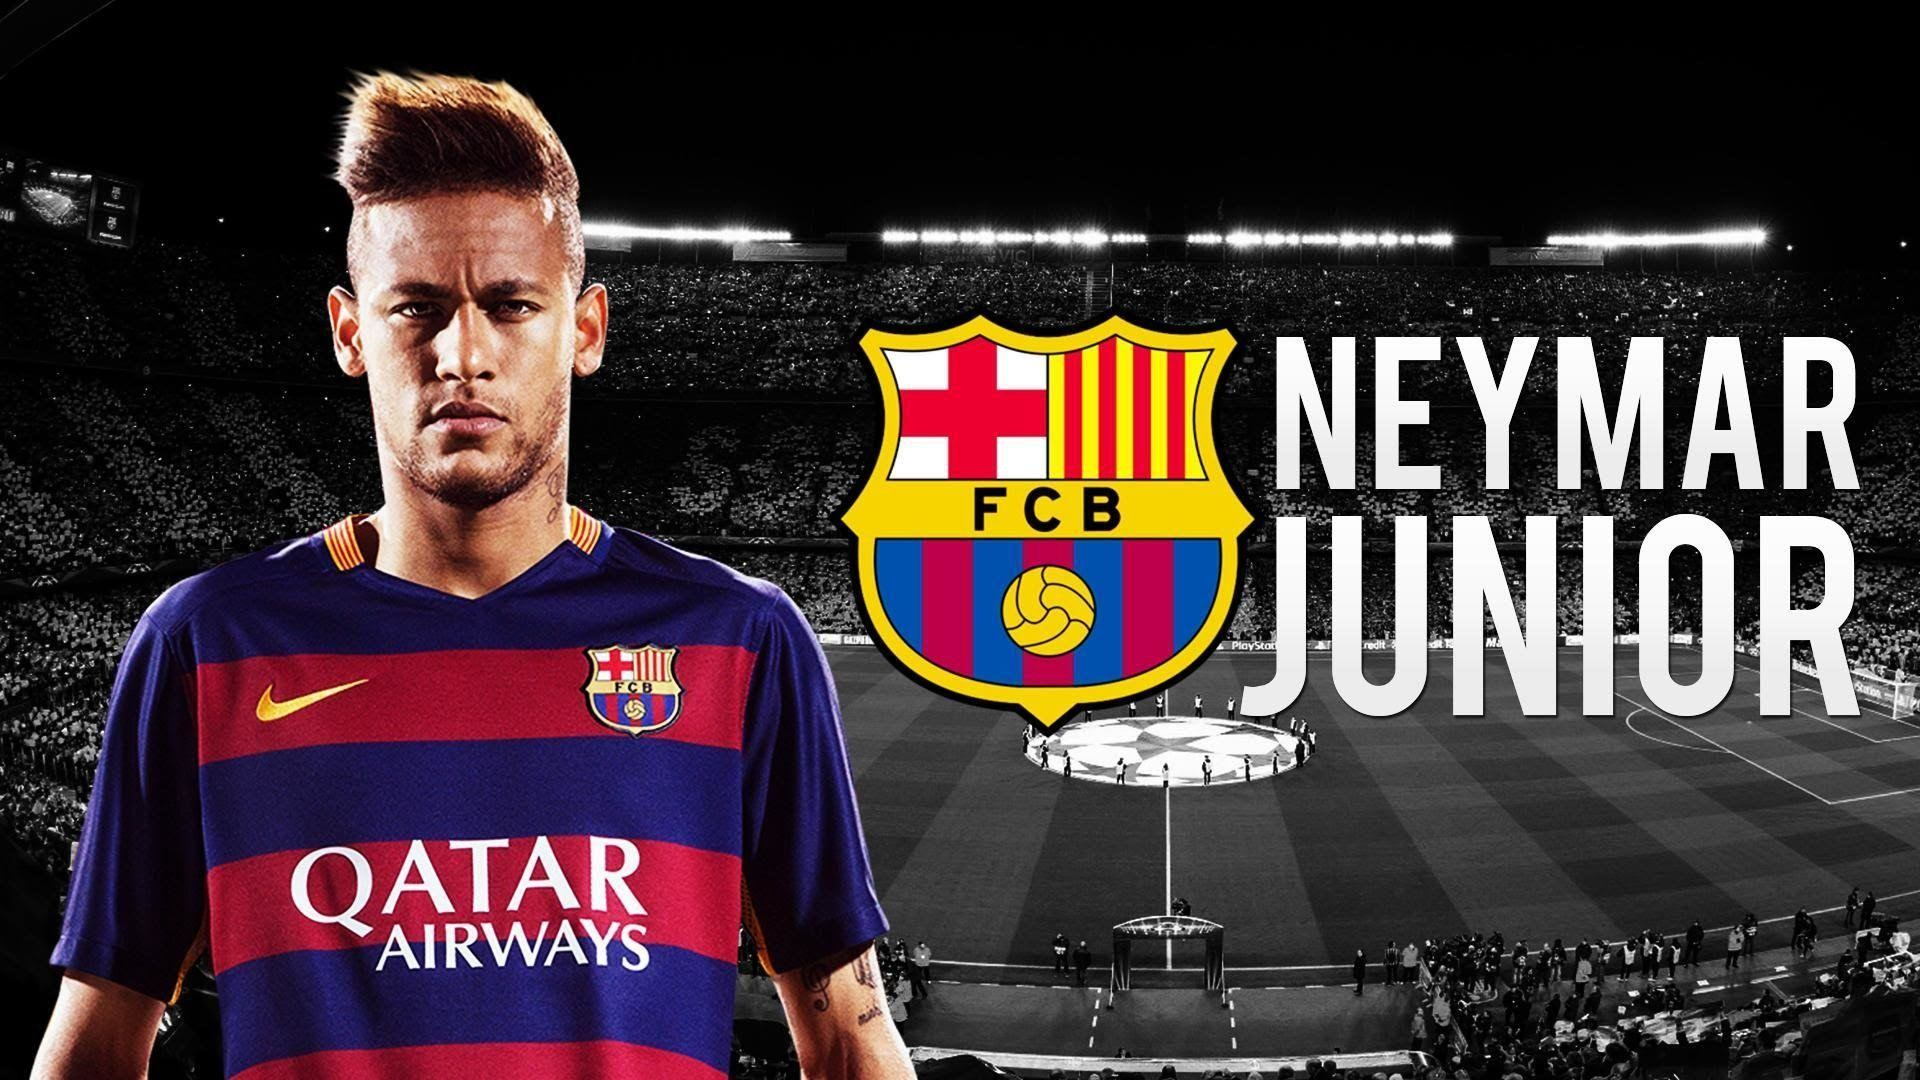 neymar jr wallpaper 2018 hd 76 images